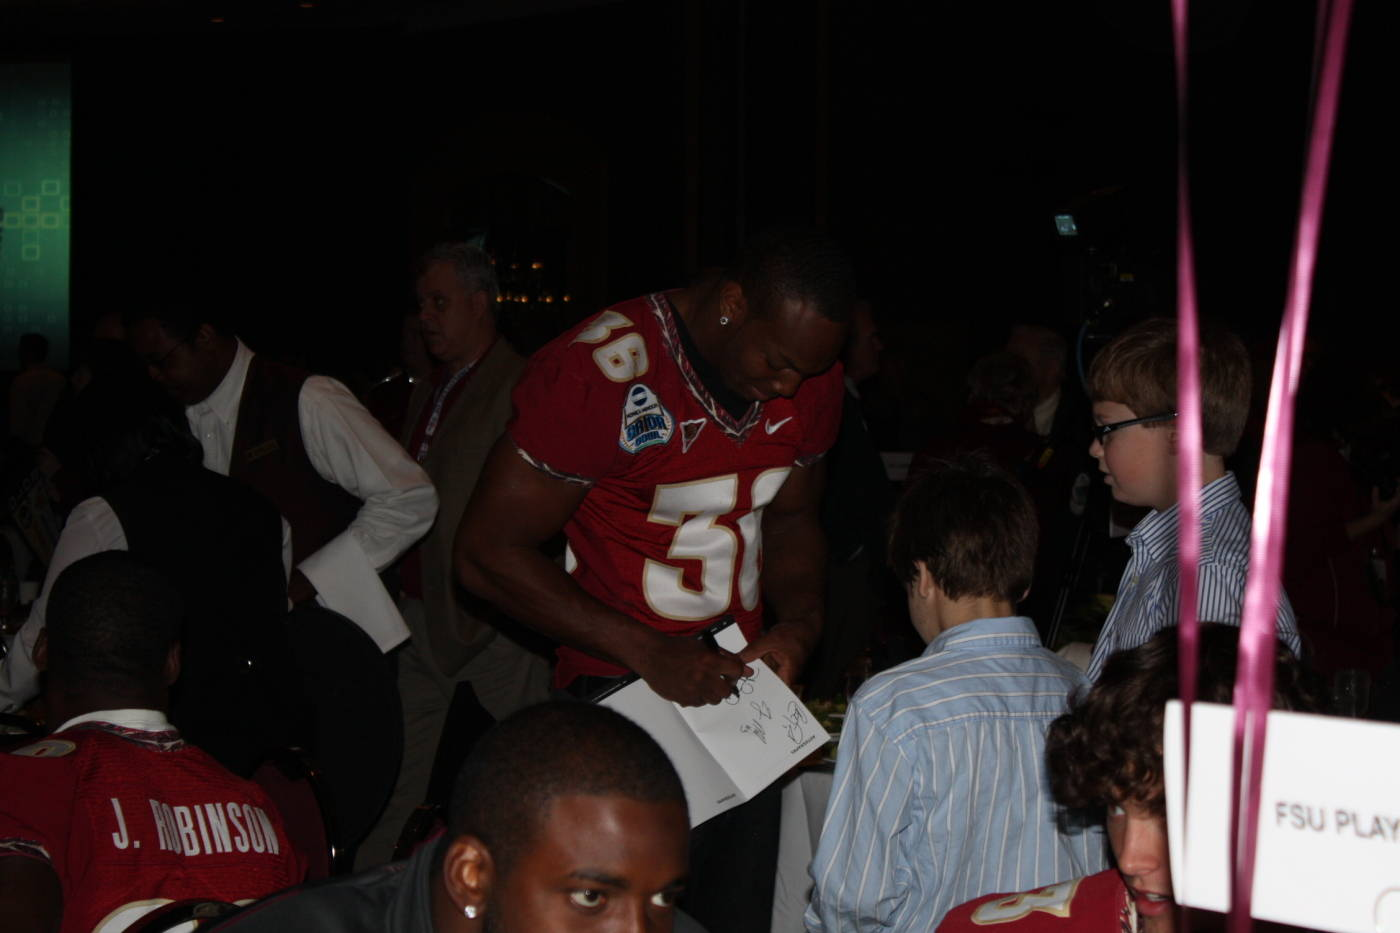 Linebacker Dekoda Watson signing autographs at the Gator Bowl Luncheon and Hall of Fame Induction.